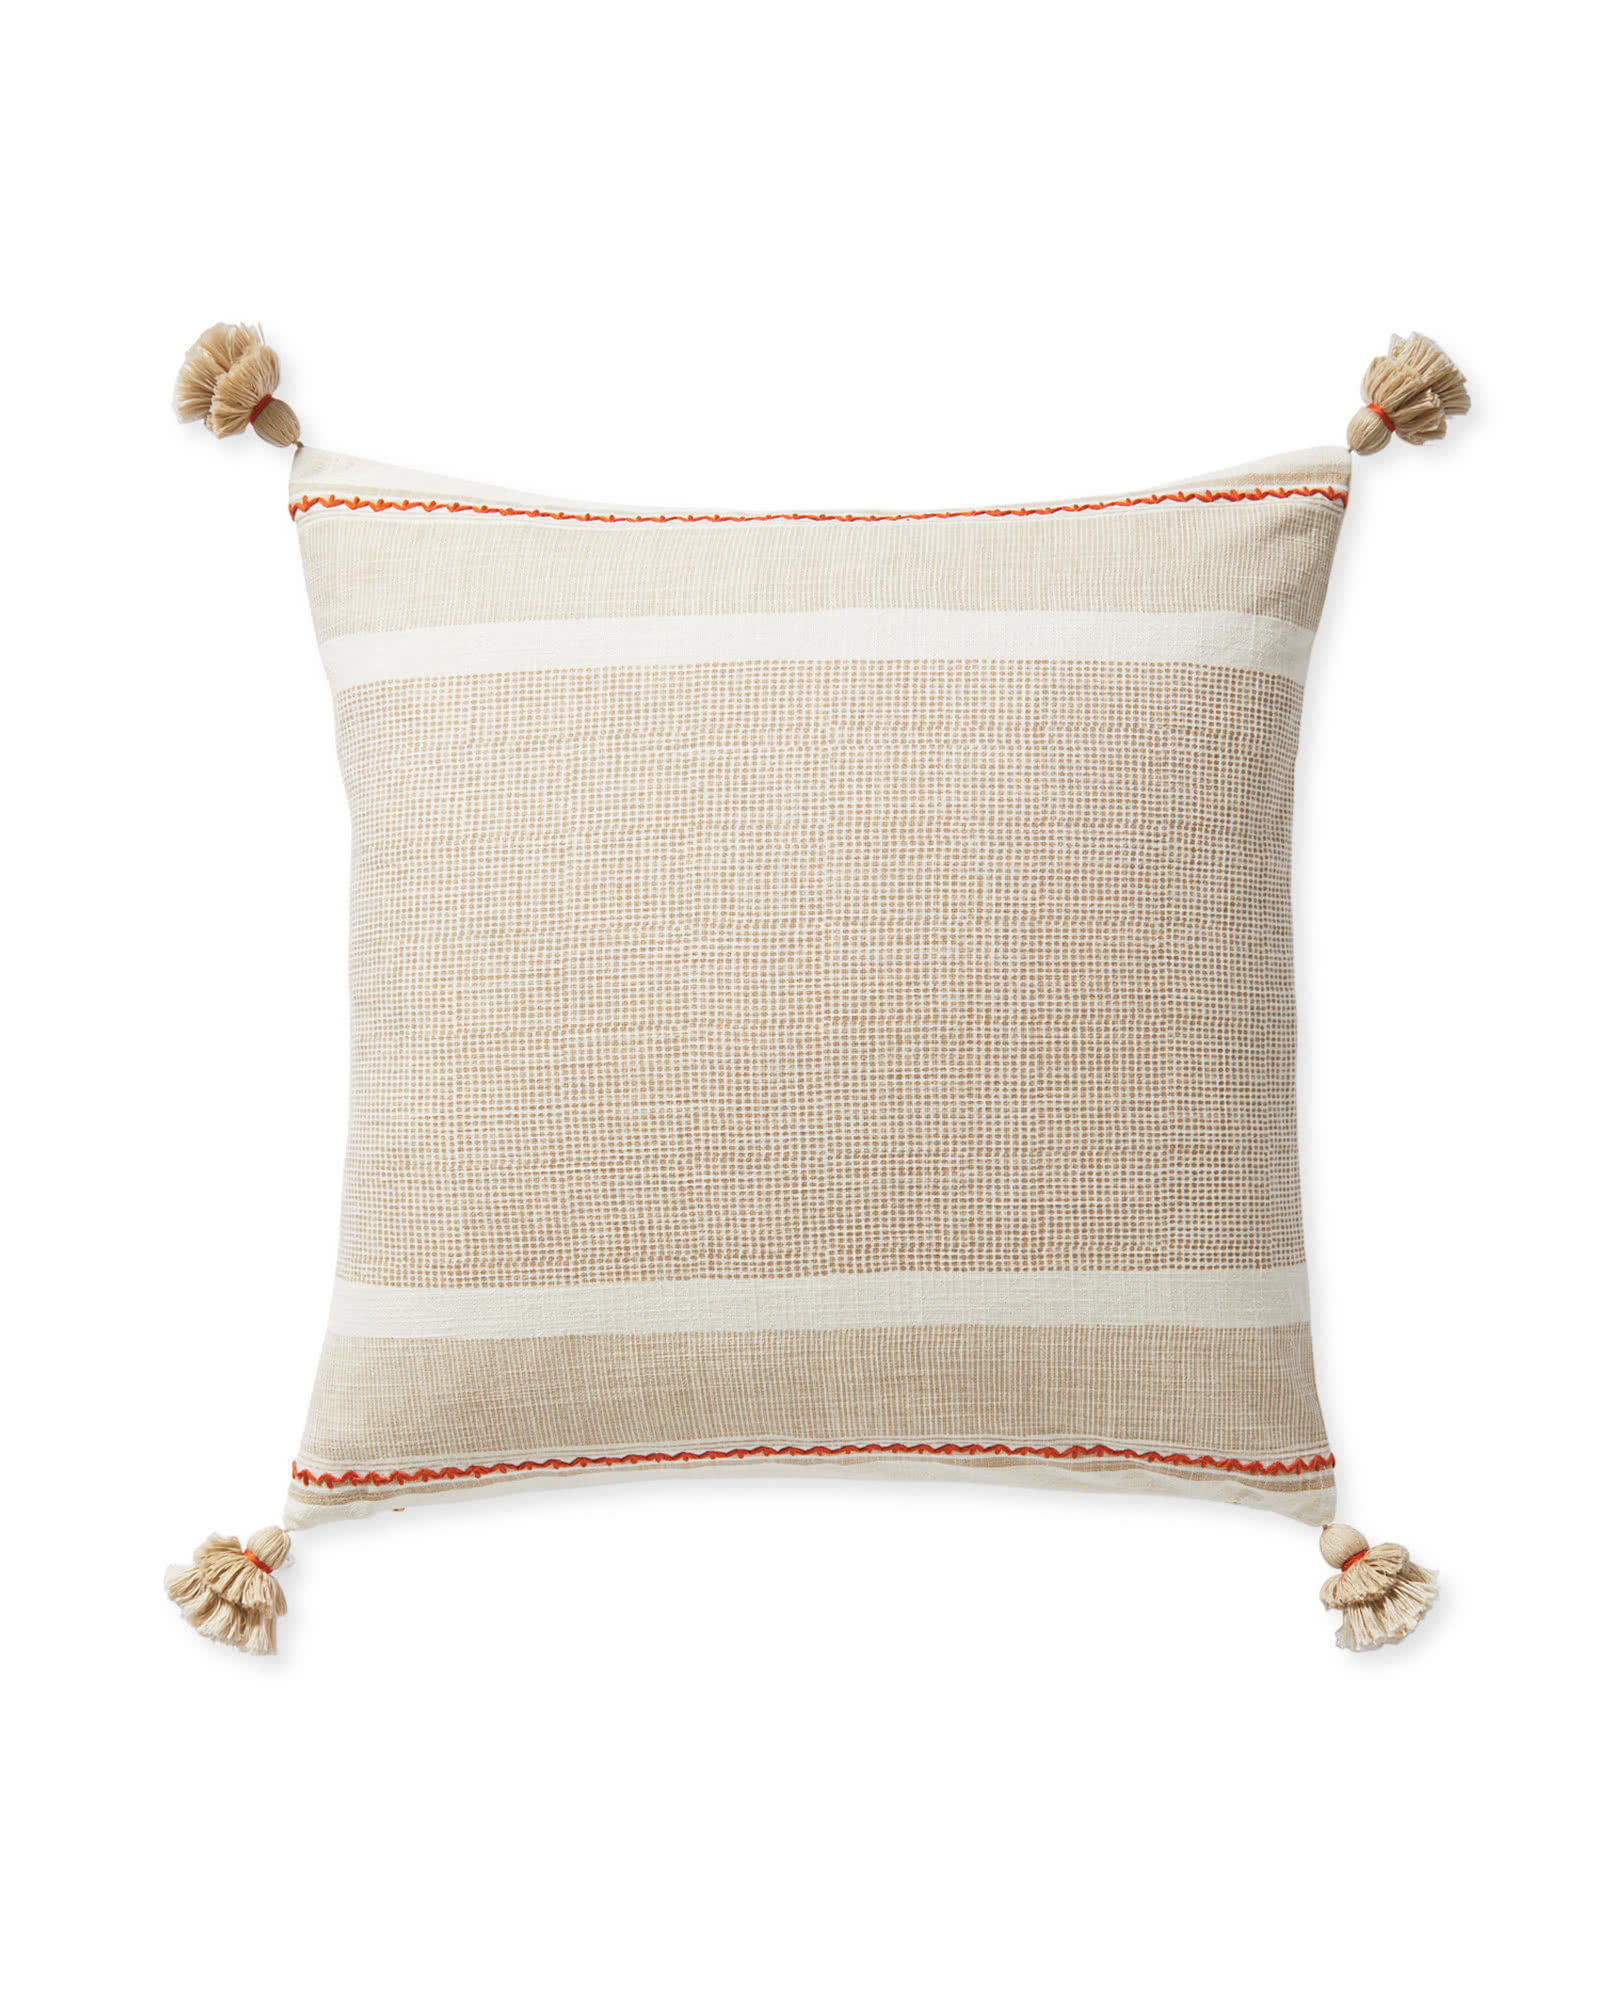 Aviv Pillow Cover, Sand